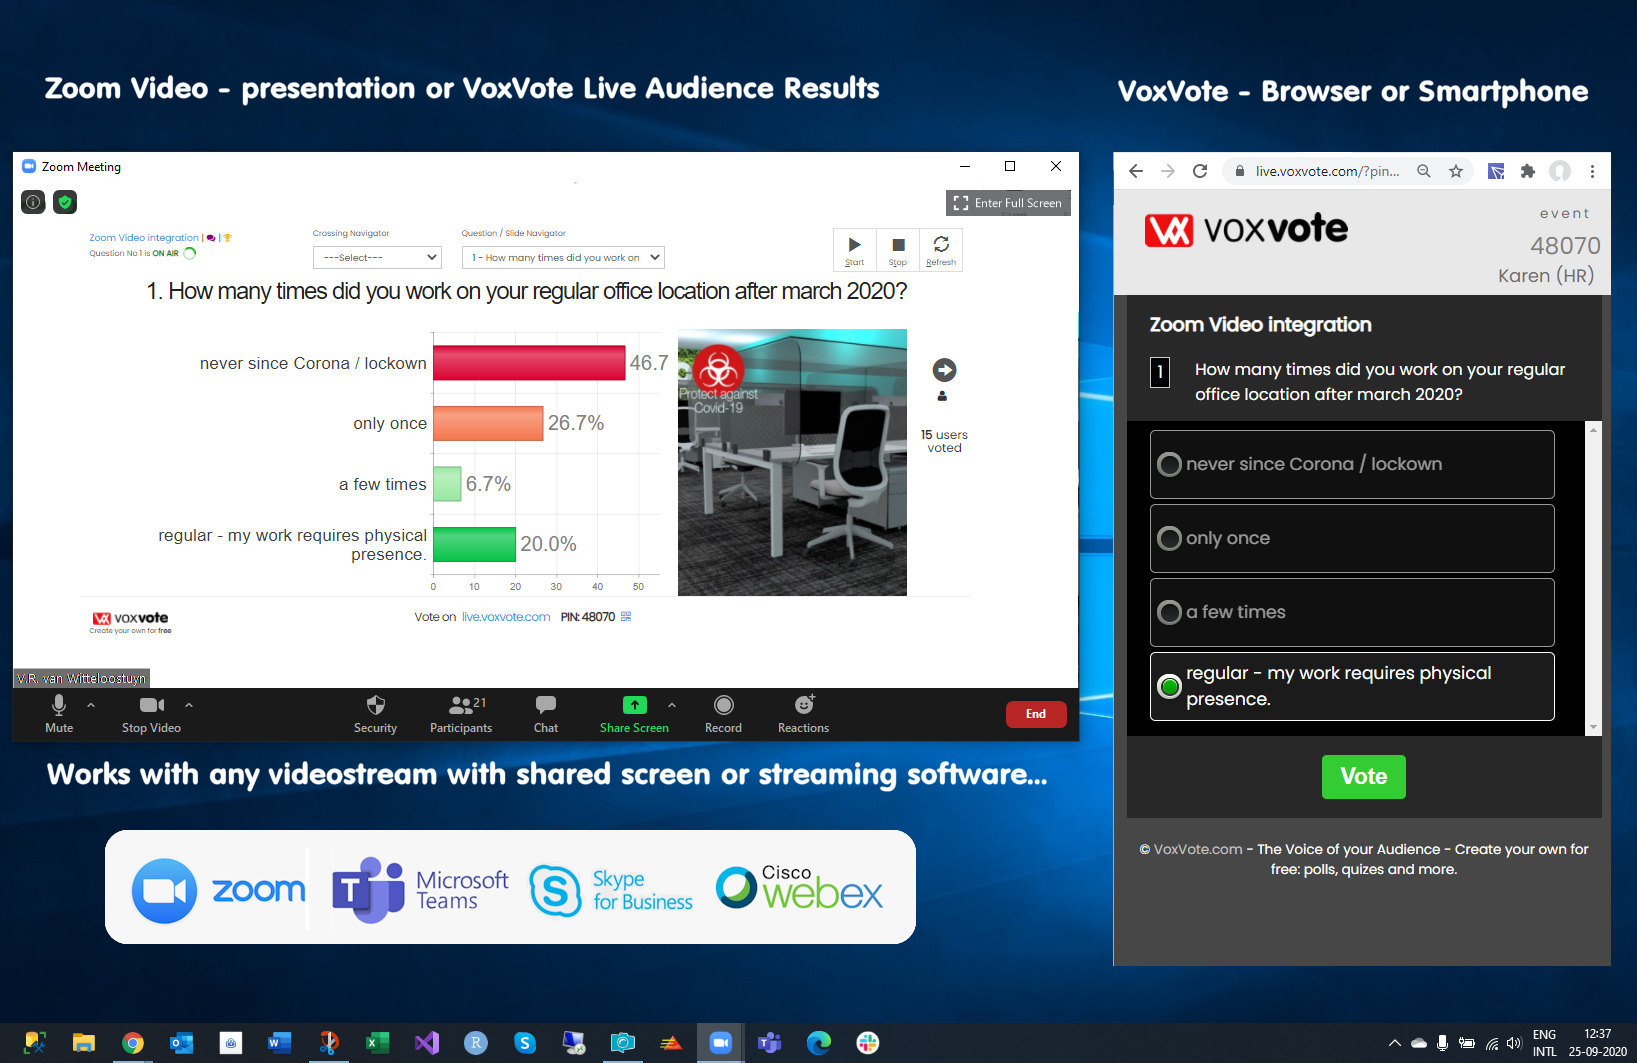 Combined windows - video stream with VoxVote polling